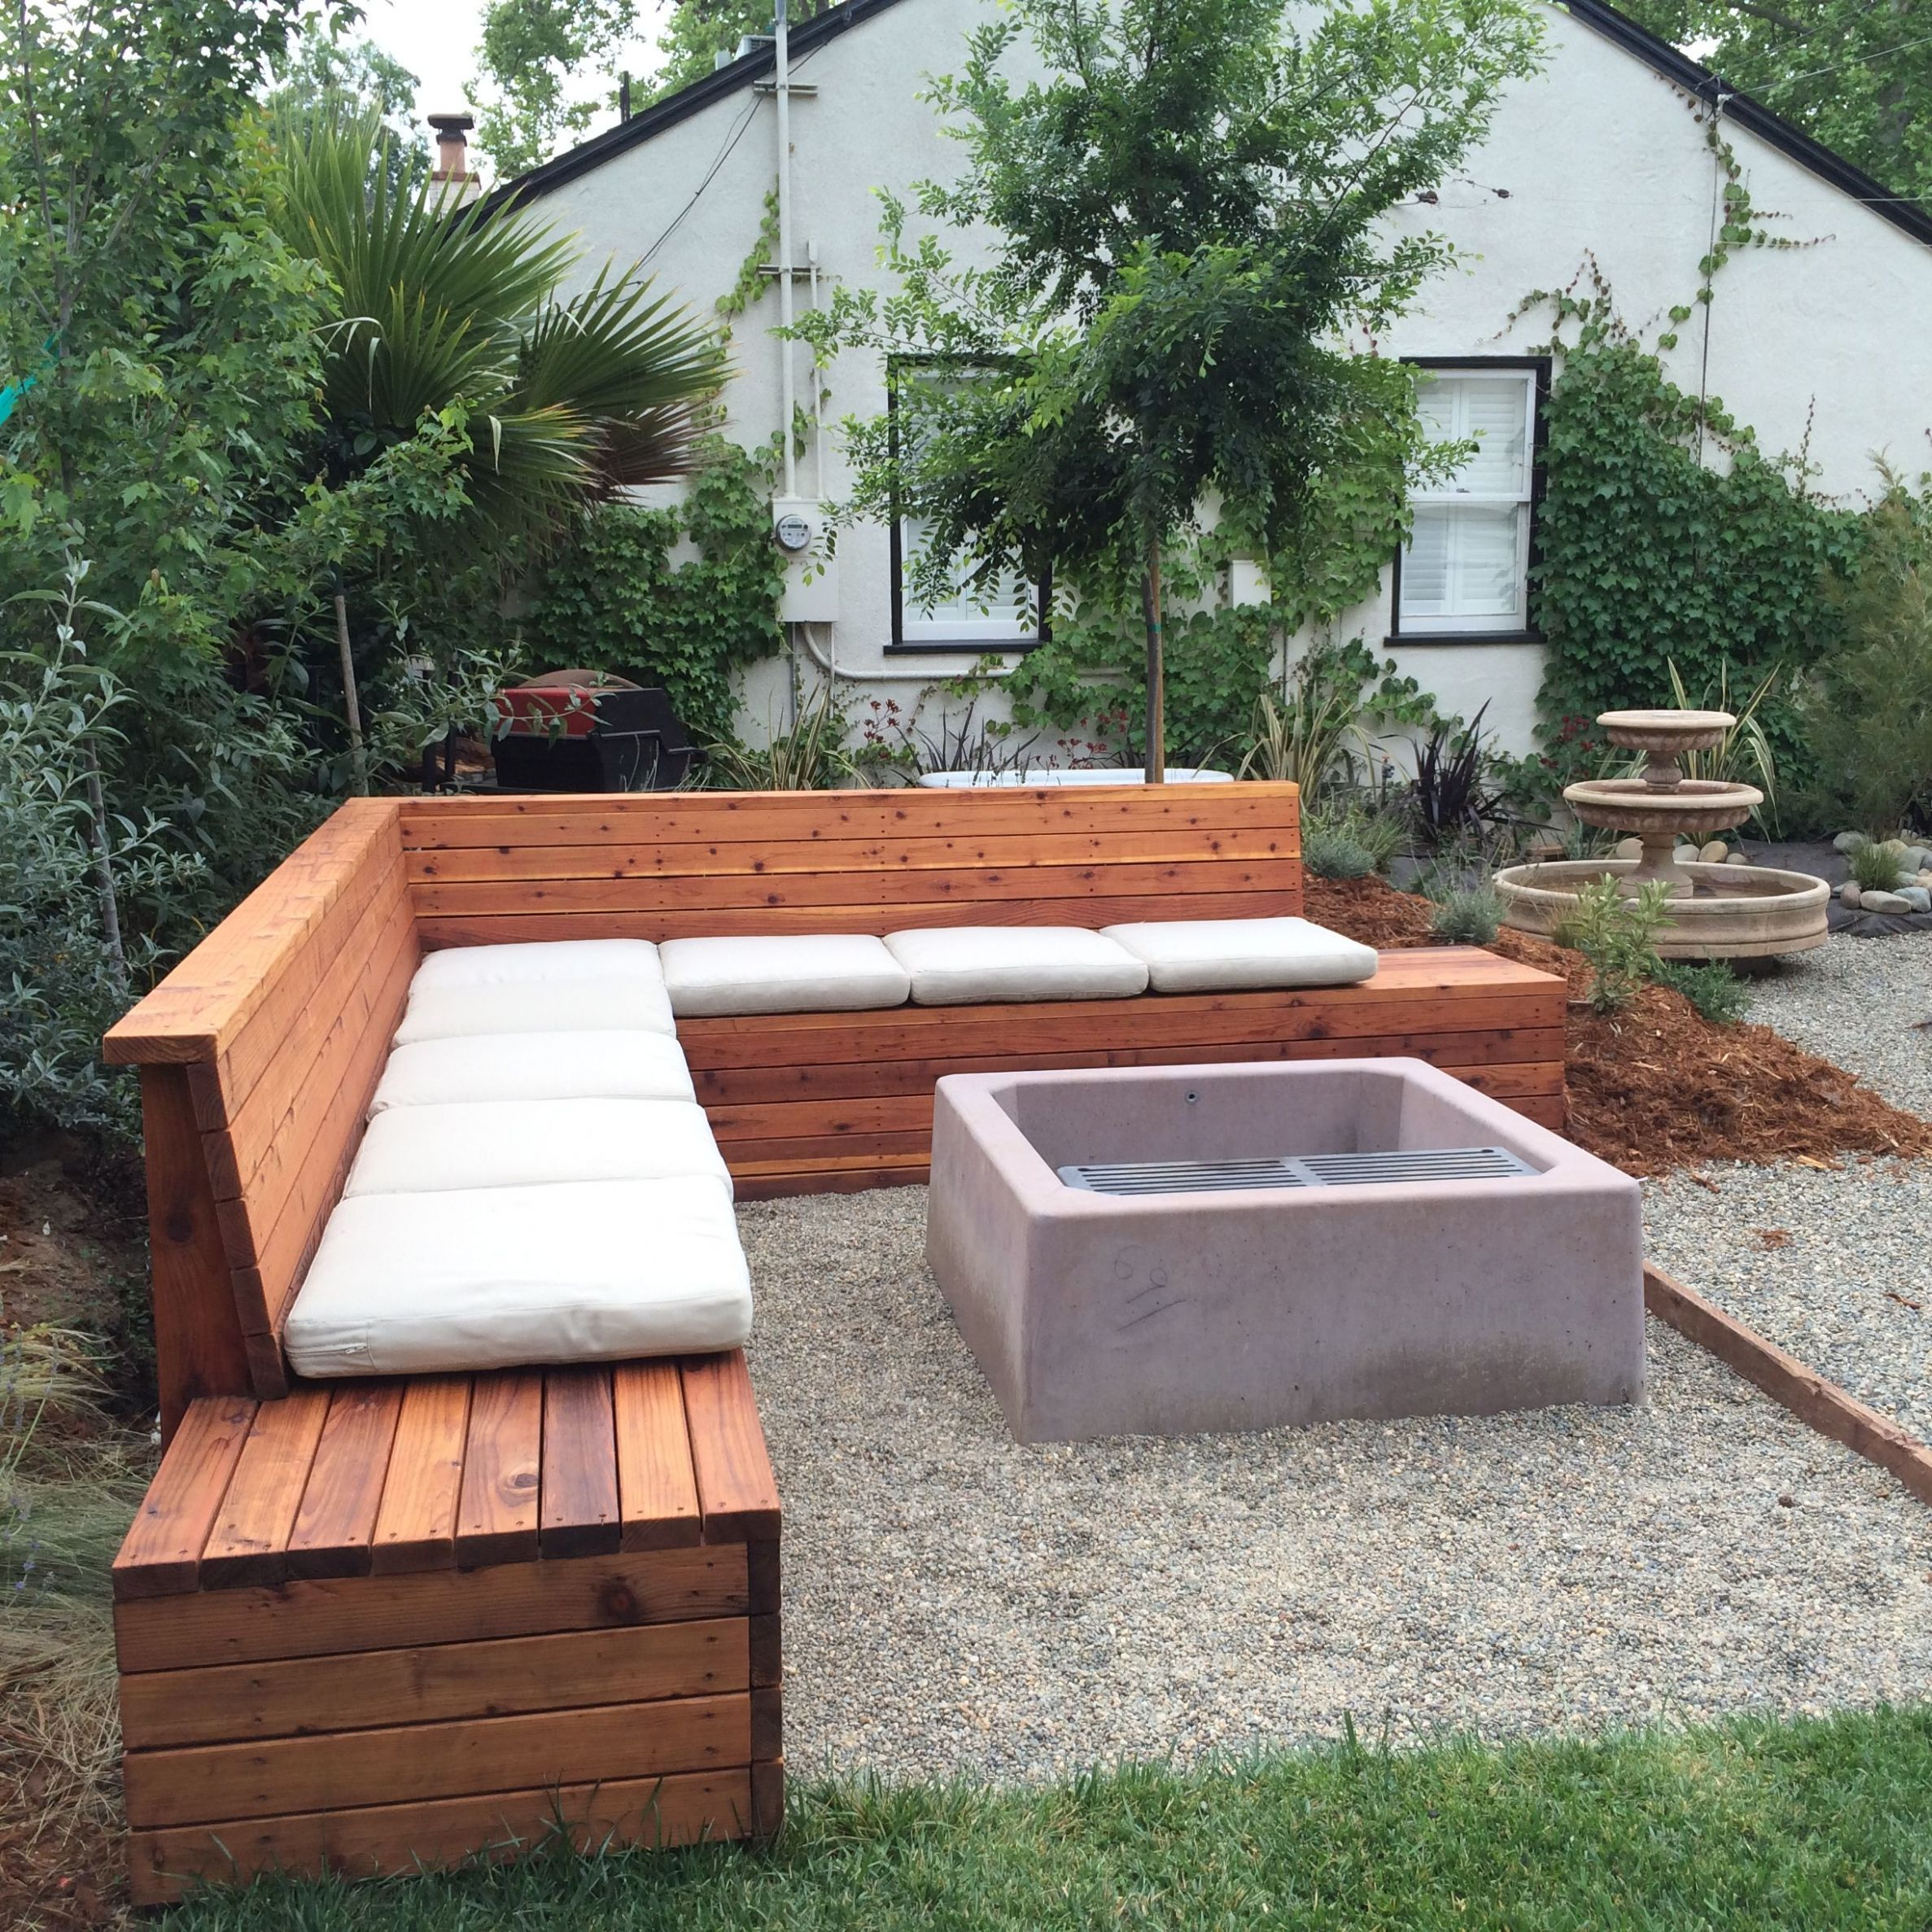 We sealed it then added cushions (With images) | Outdoor seating ..